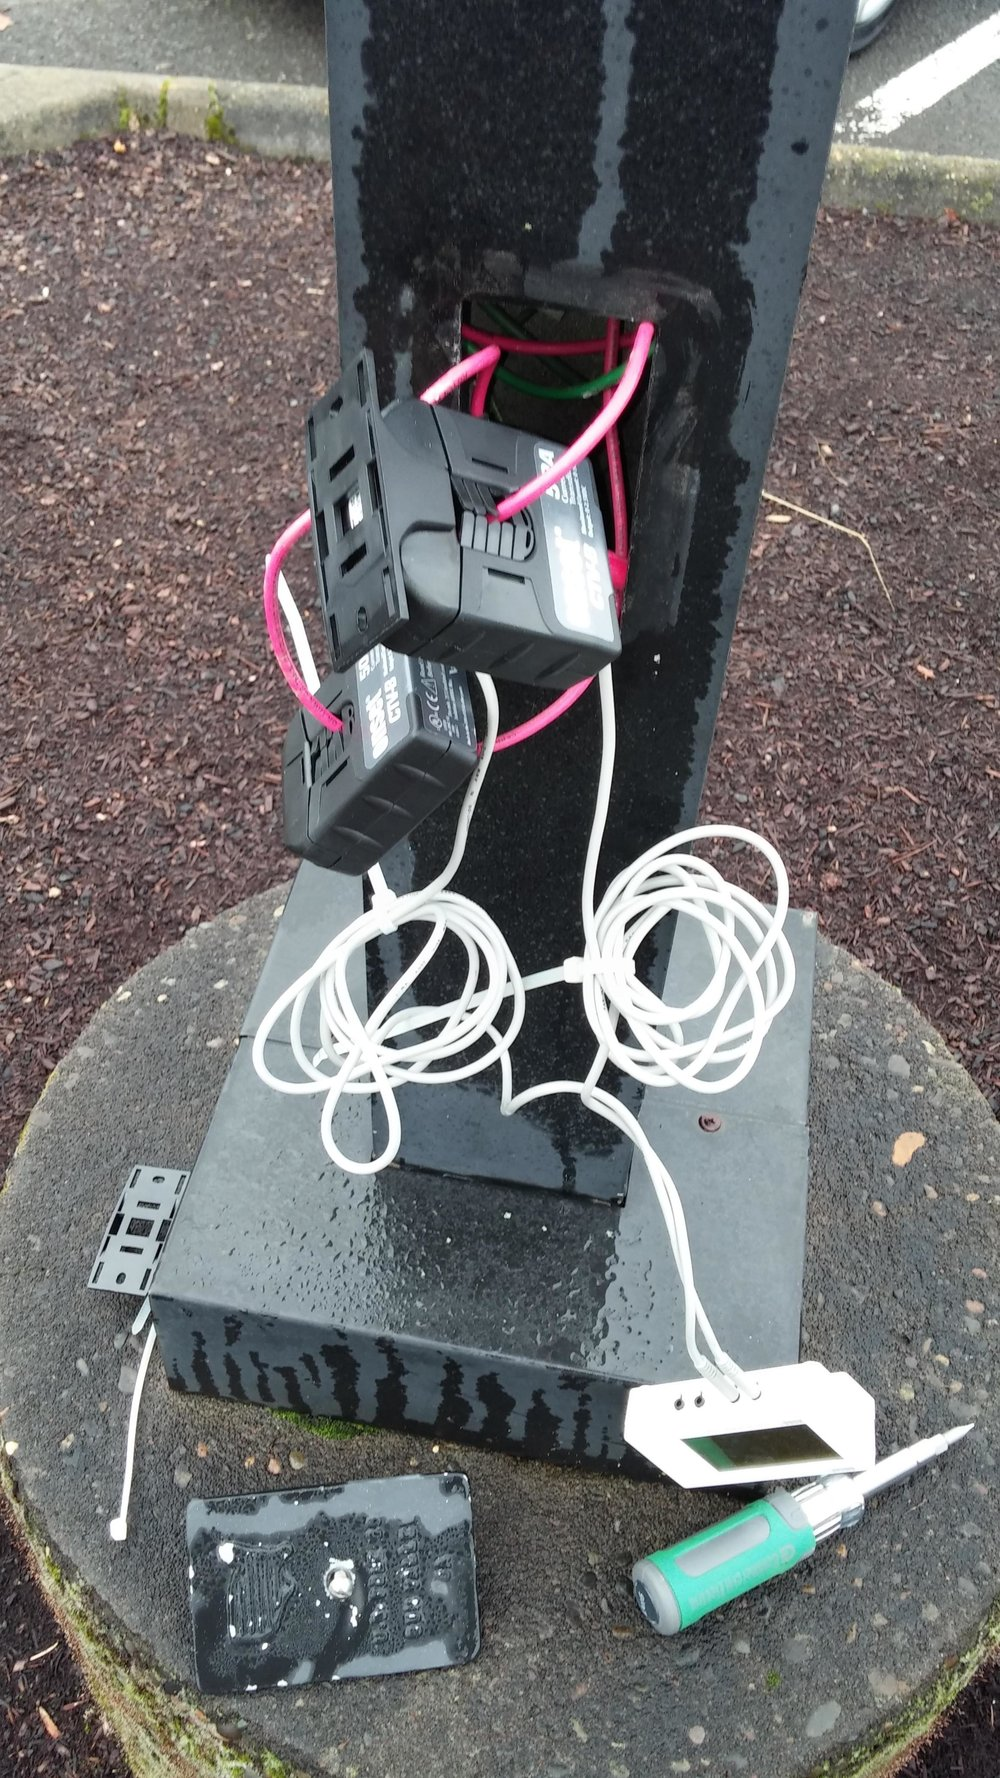 Data Logging - We attach our data loggers to high voltage electrical to measure usage over a period of time. One day to one year depending on your needs.